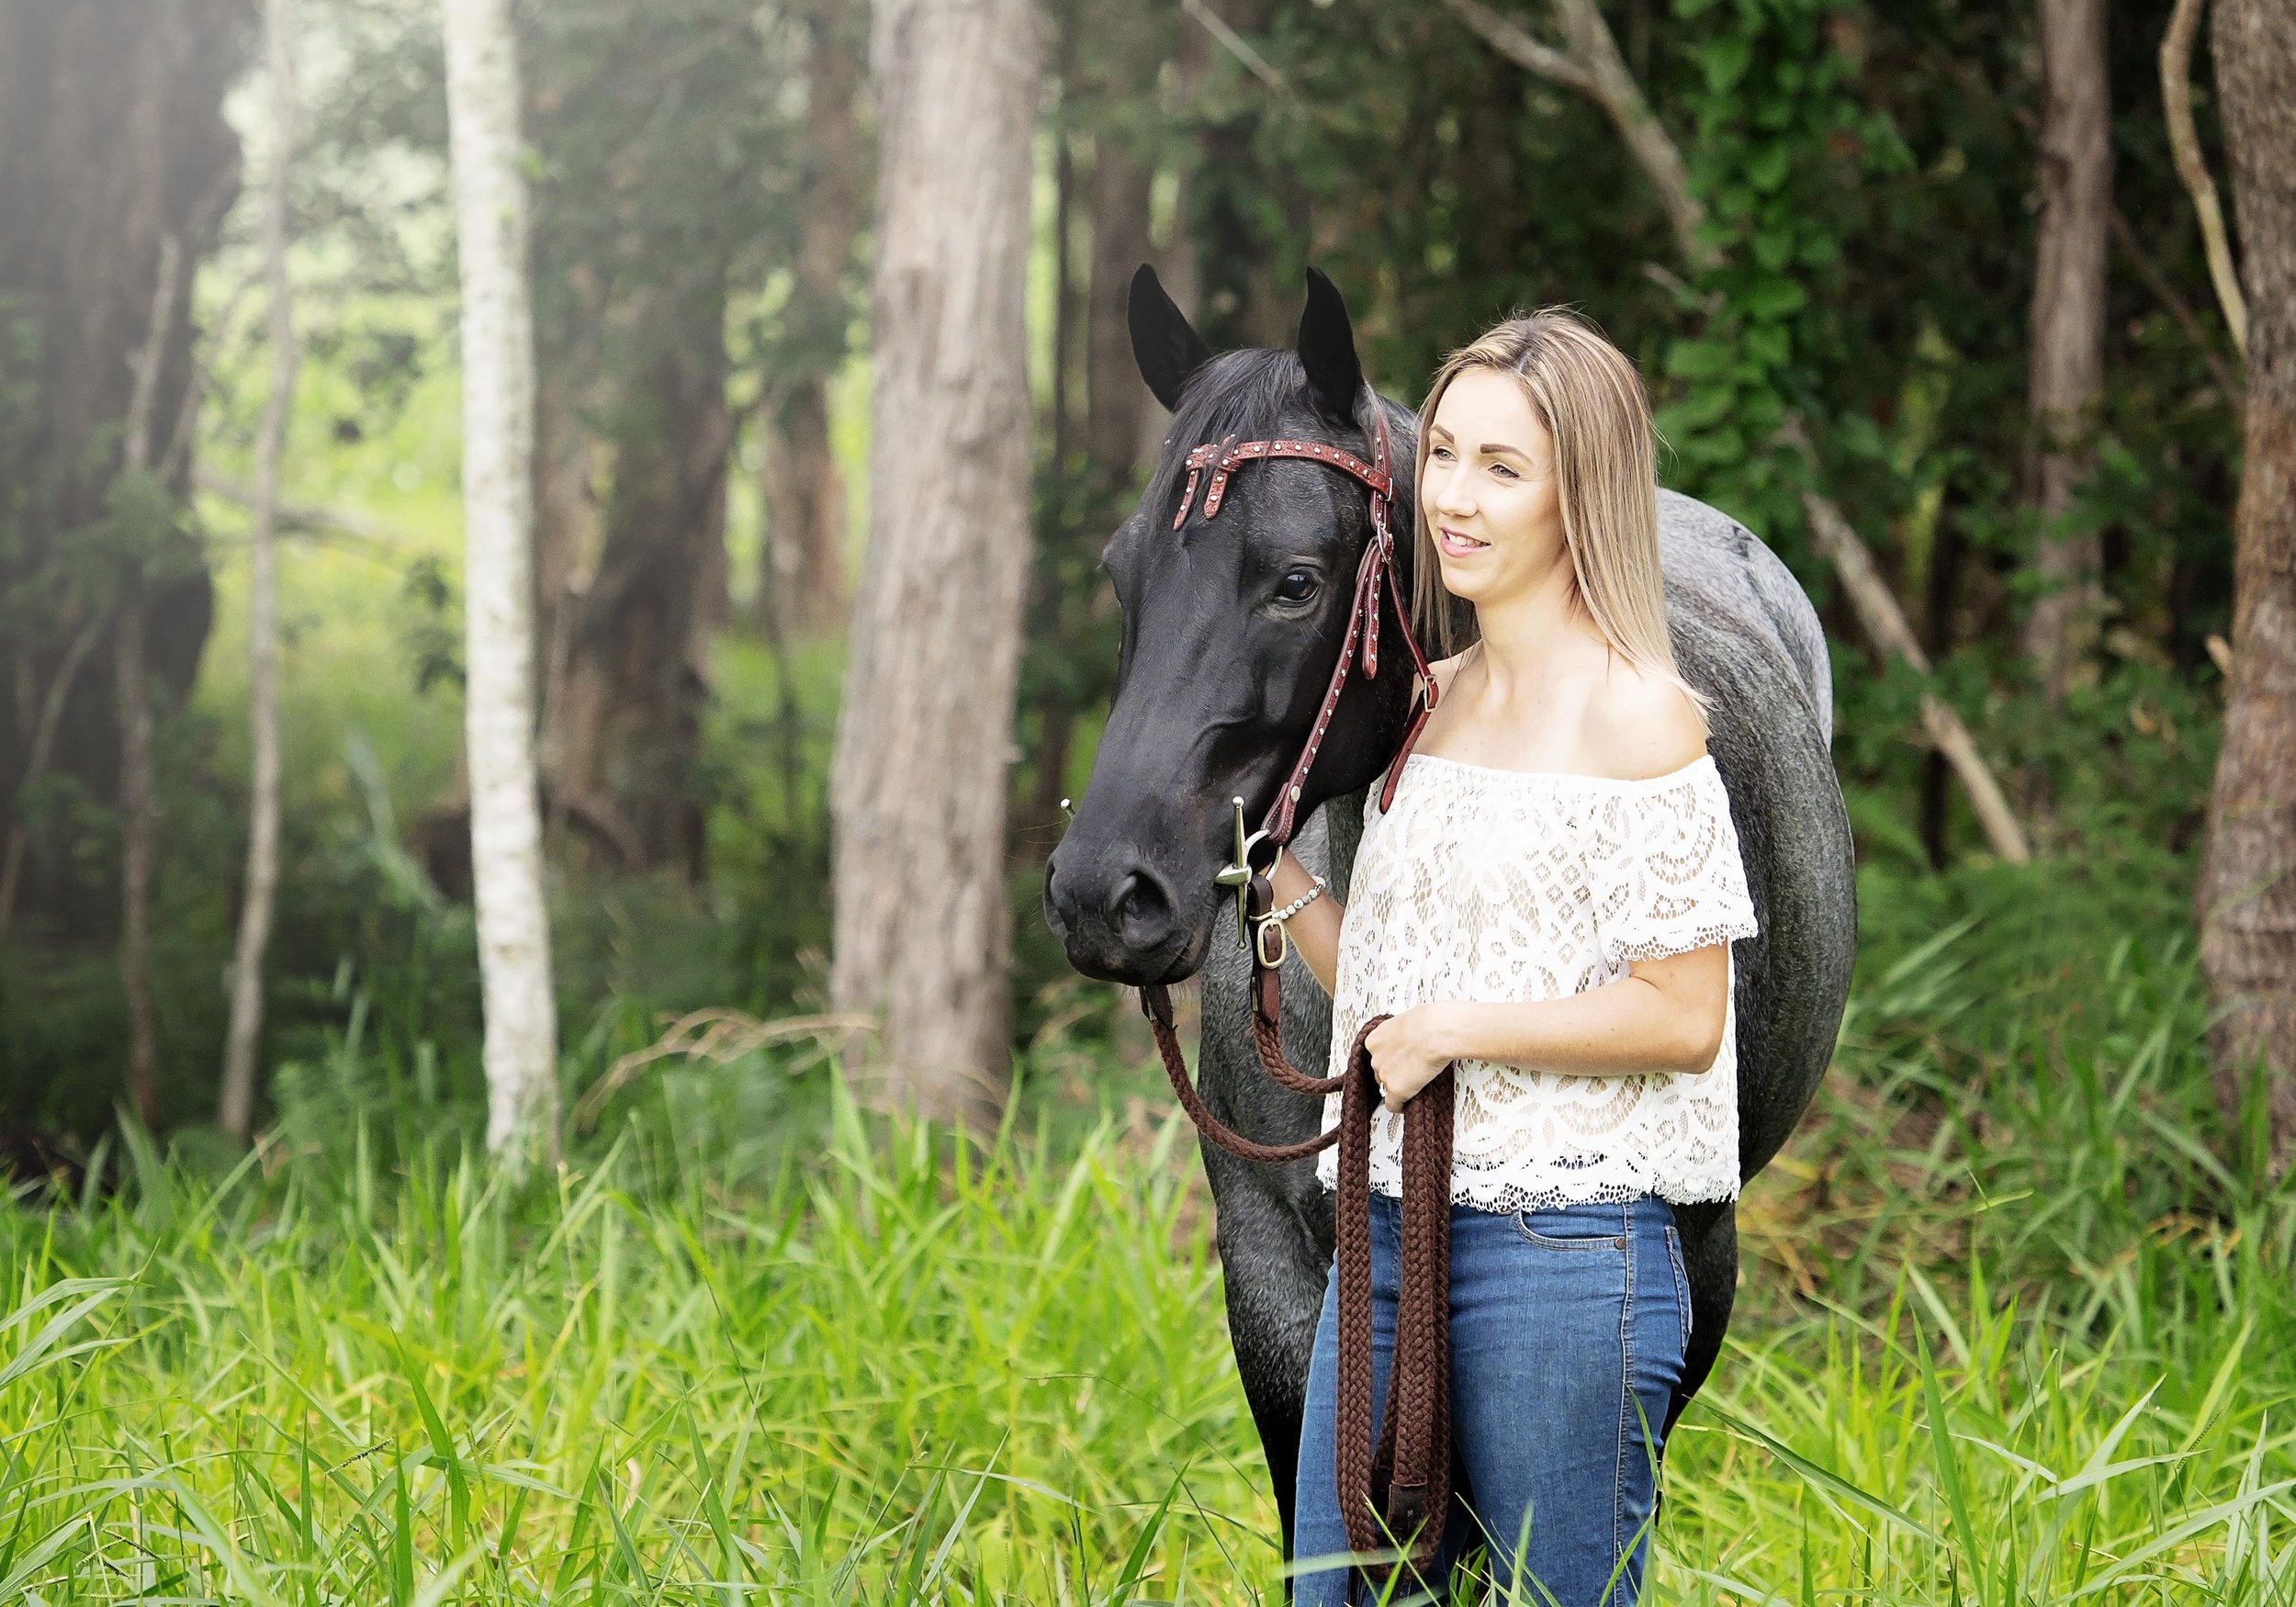 horse-natural-light-samgoodwinportraits copy.jpg